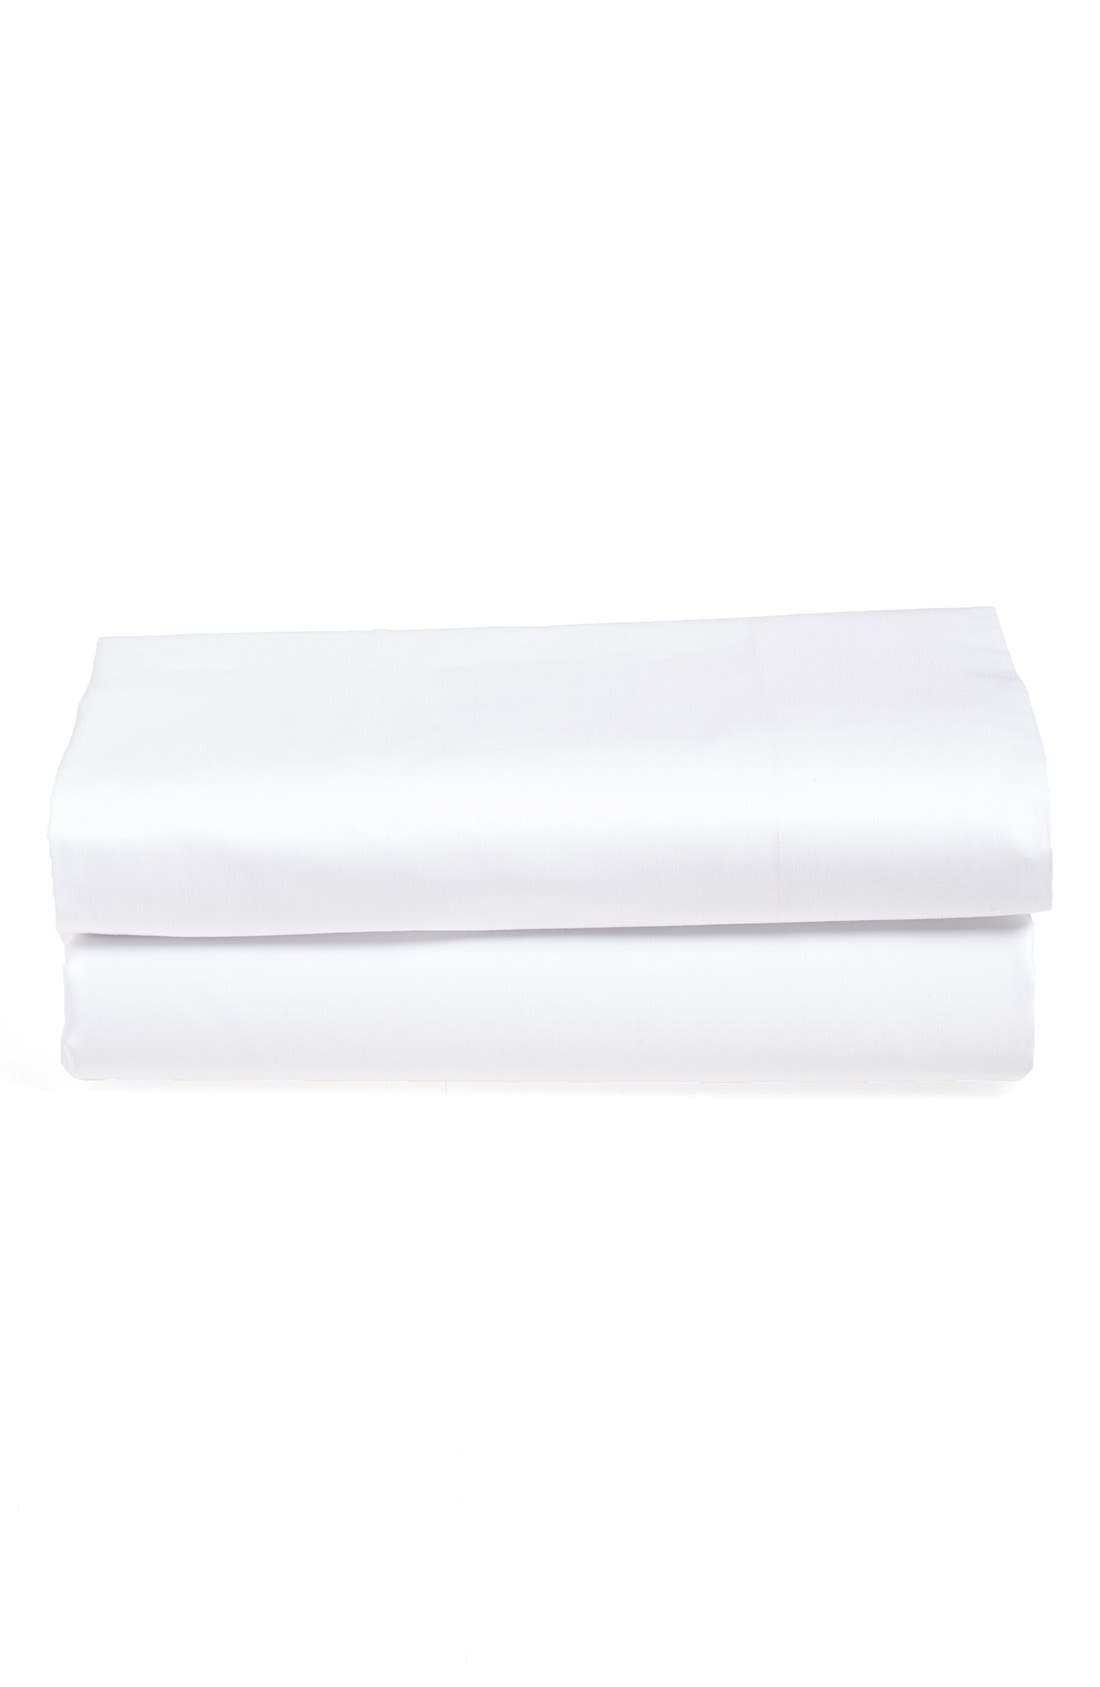 'Ultra Luxe' 600 Thread Count Flat Sheet,                         Main,                         color,